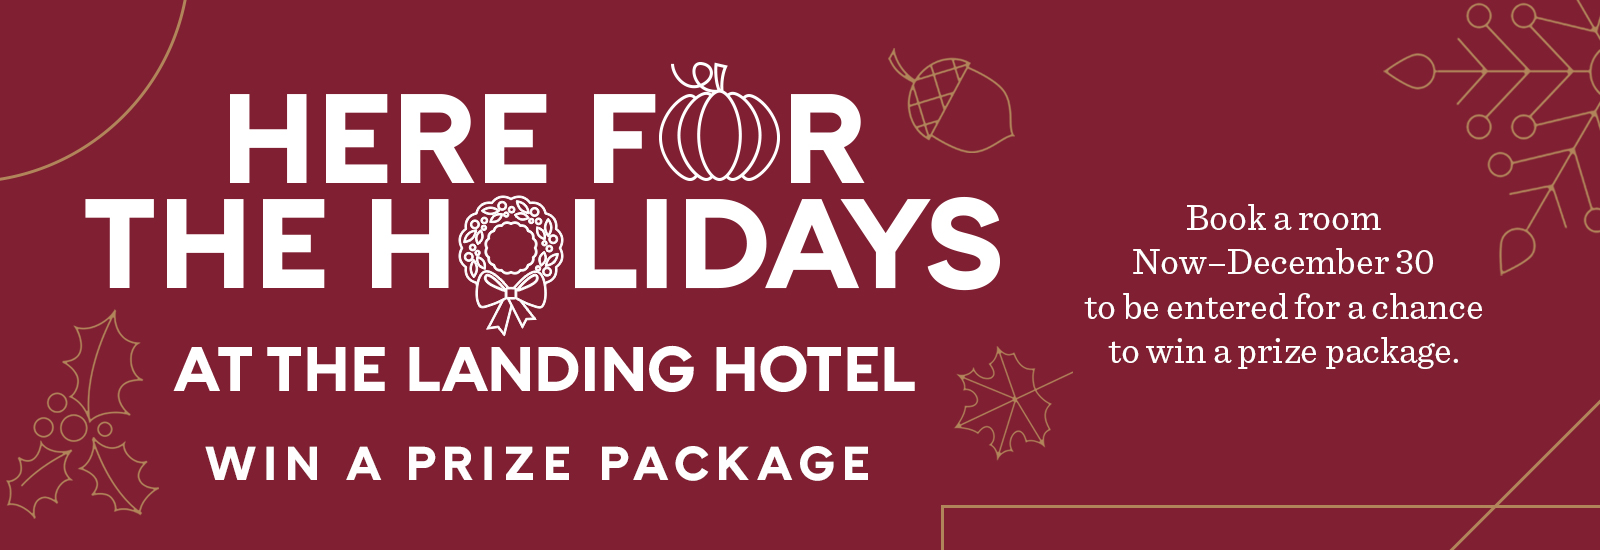 The Landing Hotel Here For The Holidays Giveaway